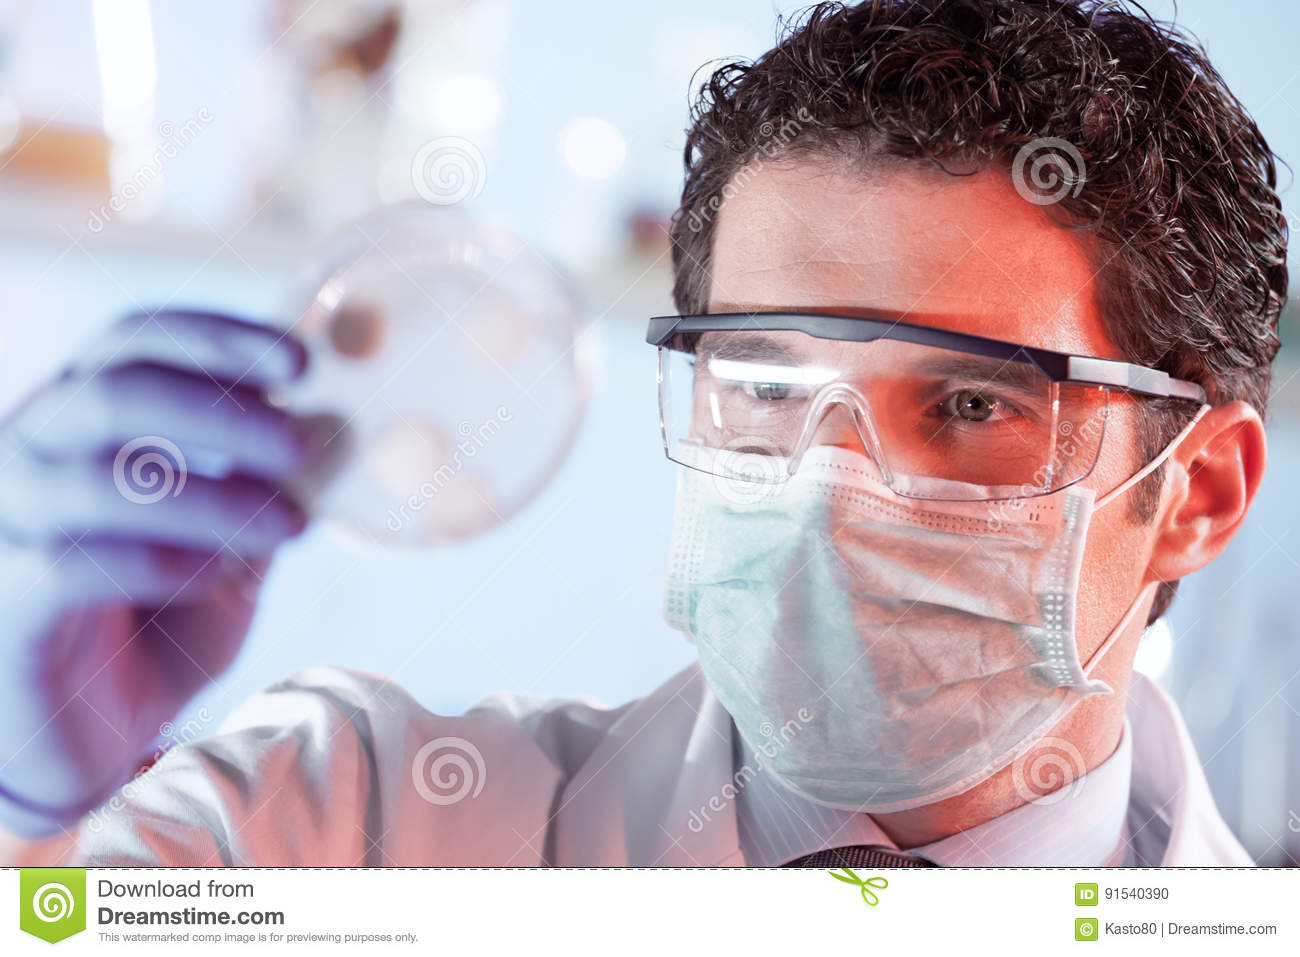 Life Science Researcher Observing Cells In Petri Dish Royalty Free Stock Image